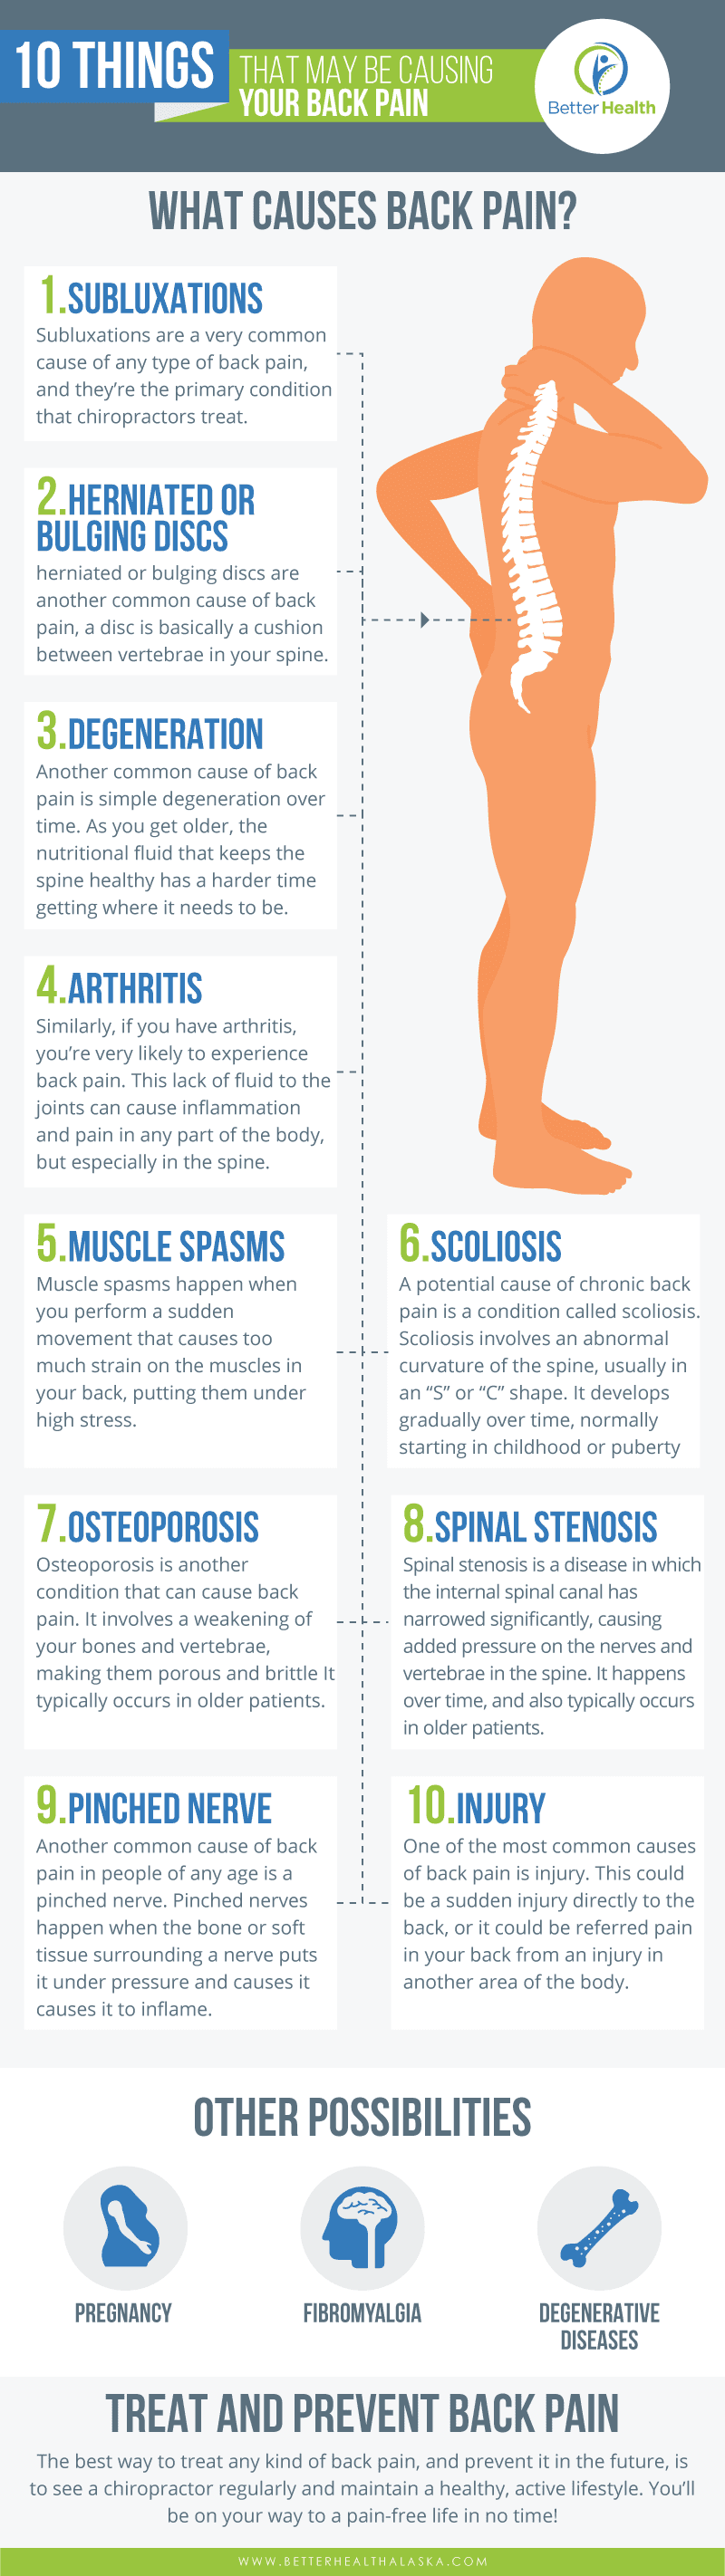 10 Things That May Be Causing Your Back Pain Infographic